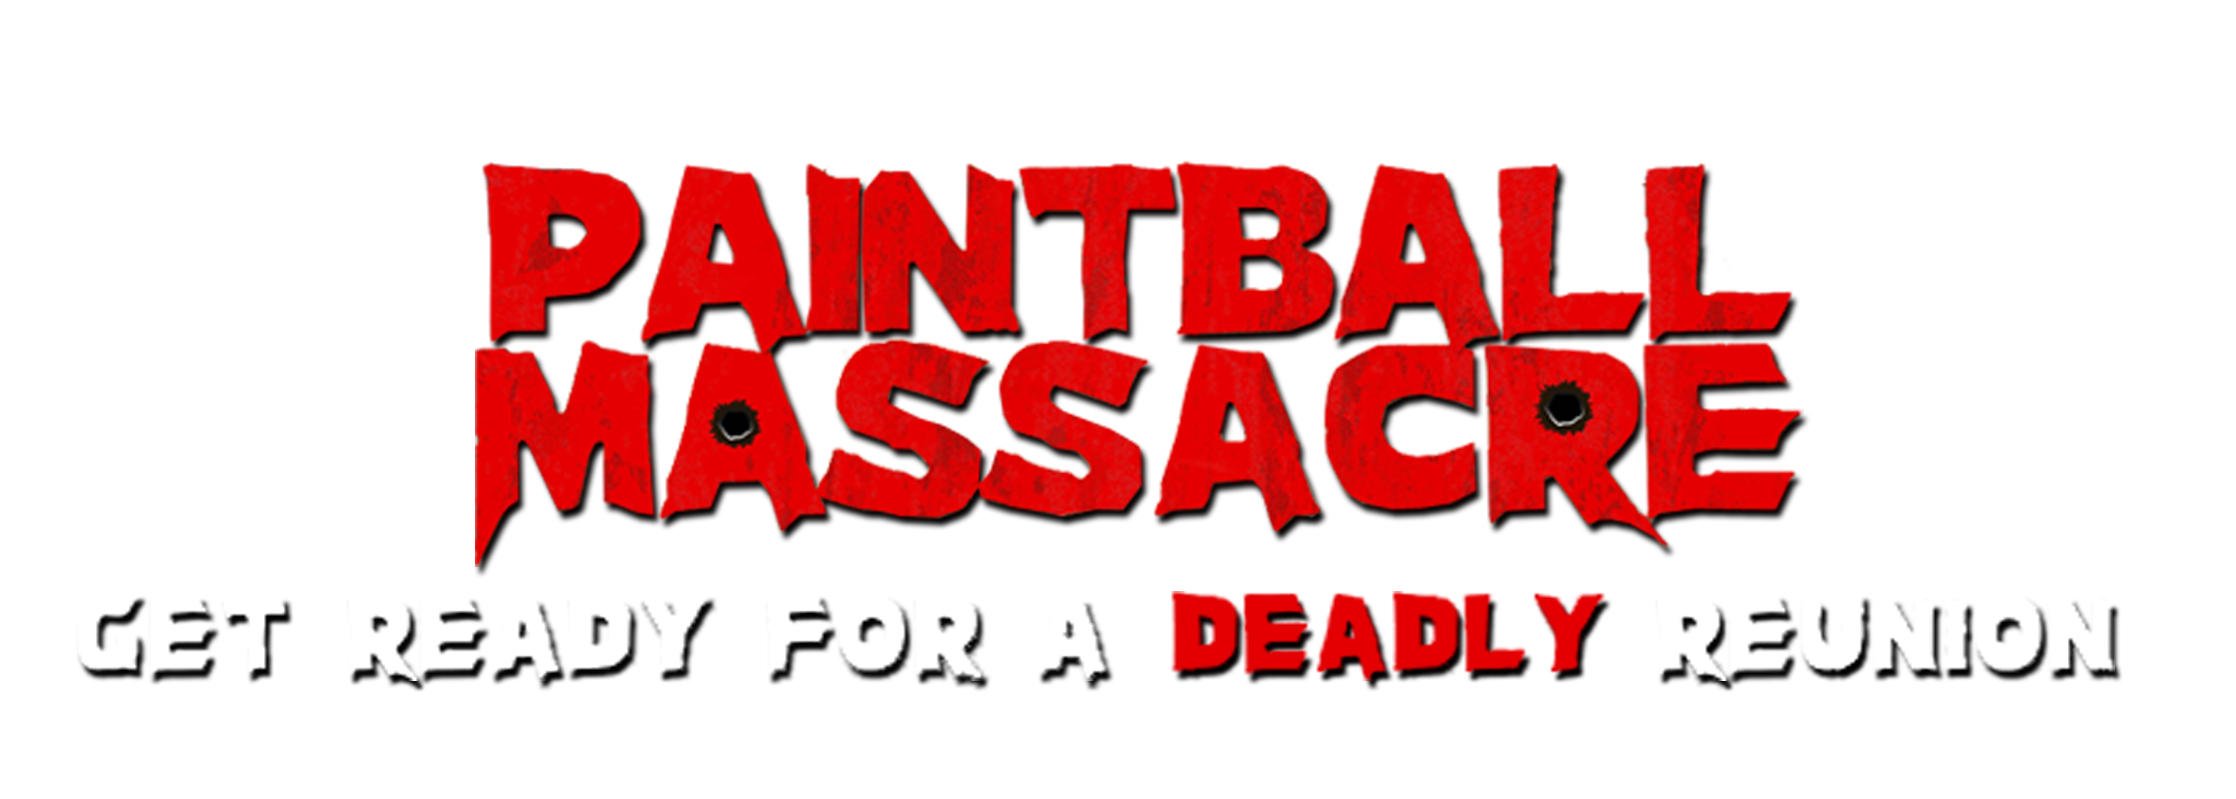 Paintball Massacre – The Movie